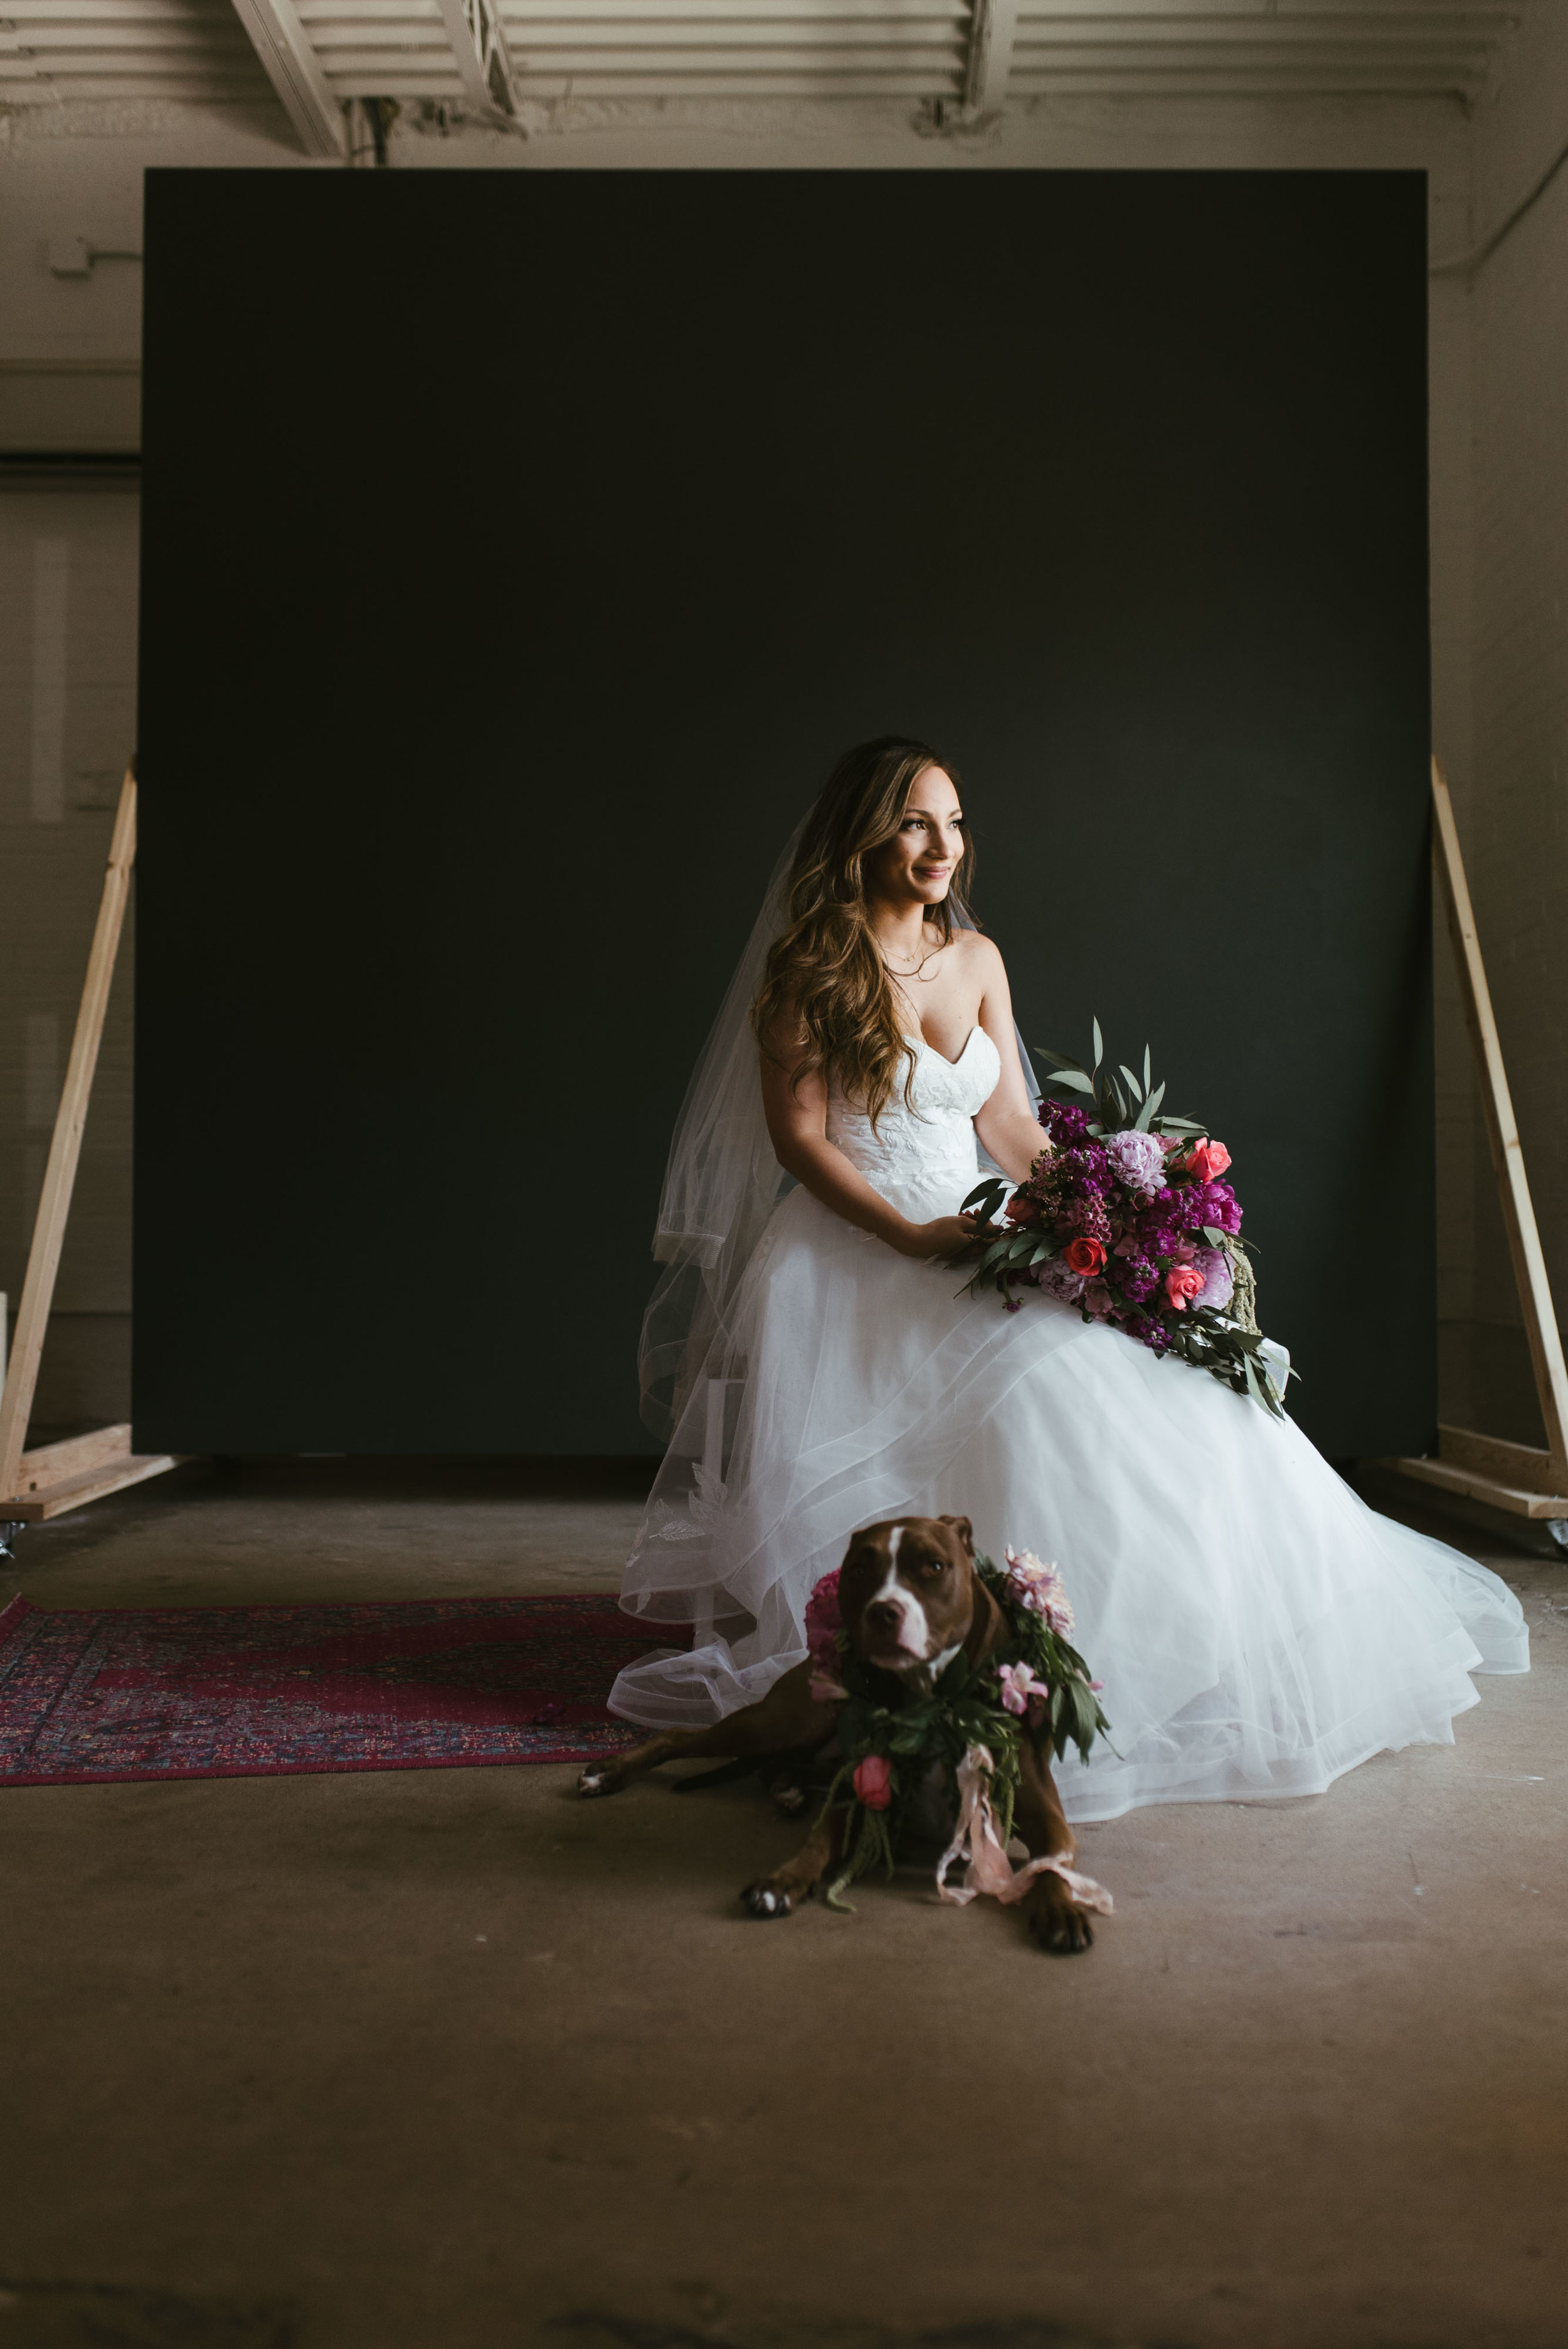 The TX Studio Bridal Session | Fort Worth Wedding Photographer | Jordan Mitchell Photography | www.jordanmitchellphotography.com